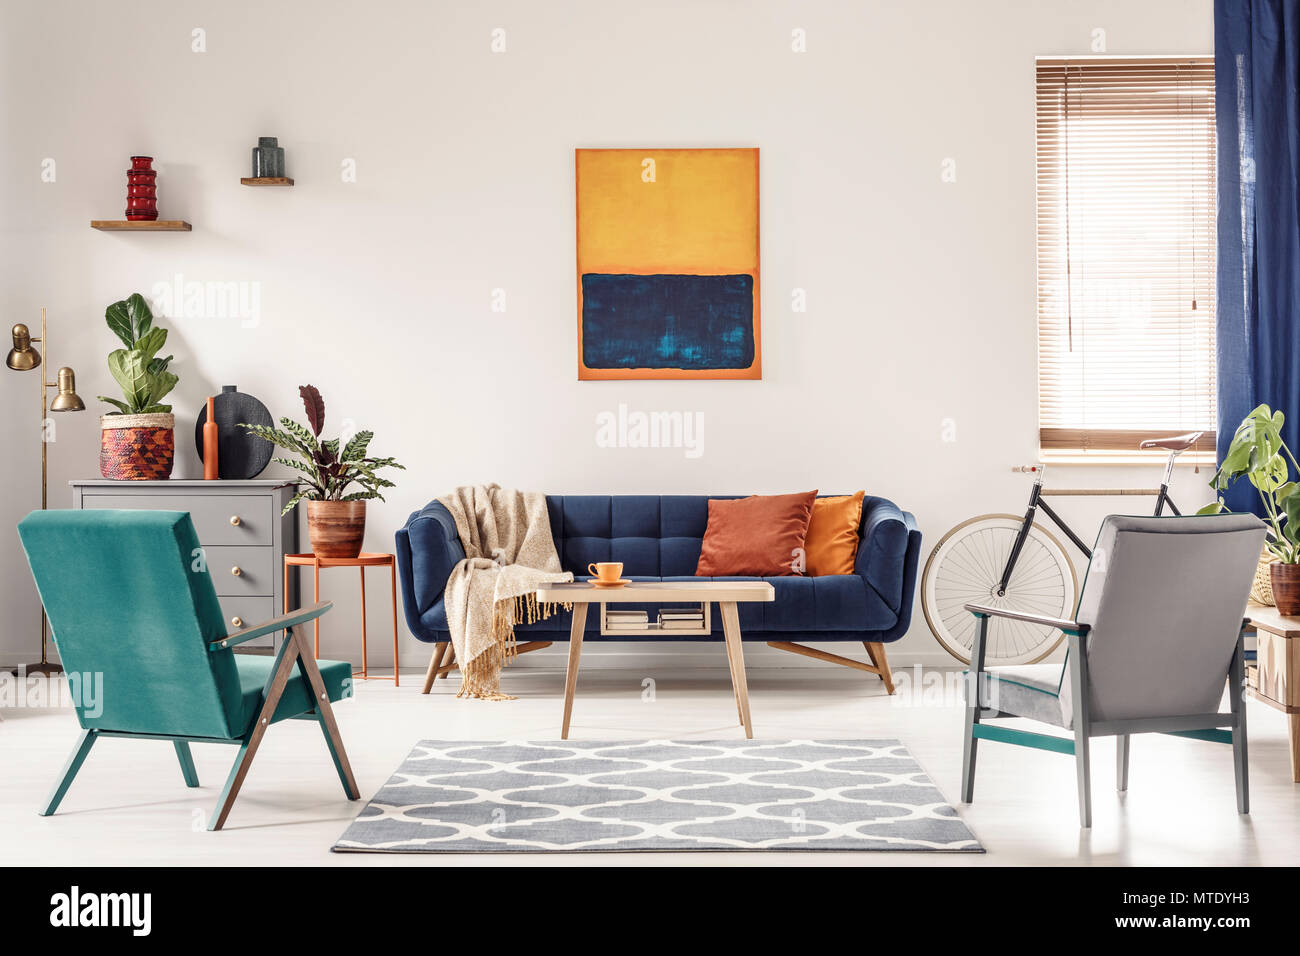 Real Photo Of A Navy Blue Sofa With Orange Cushions And An Artwork